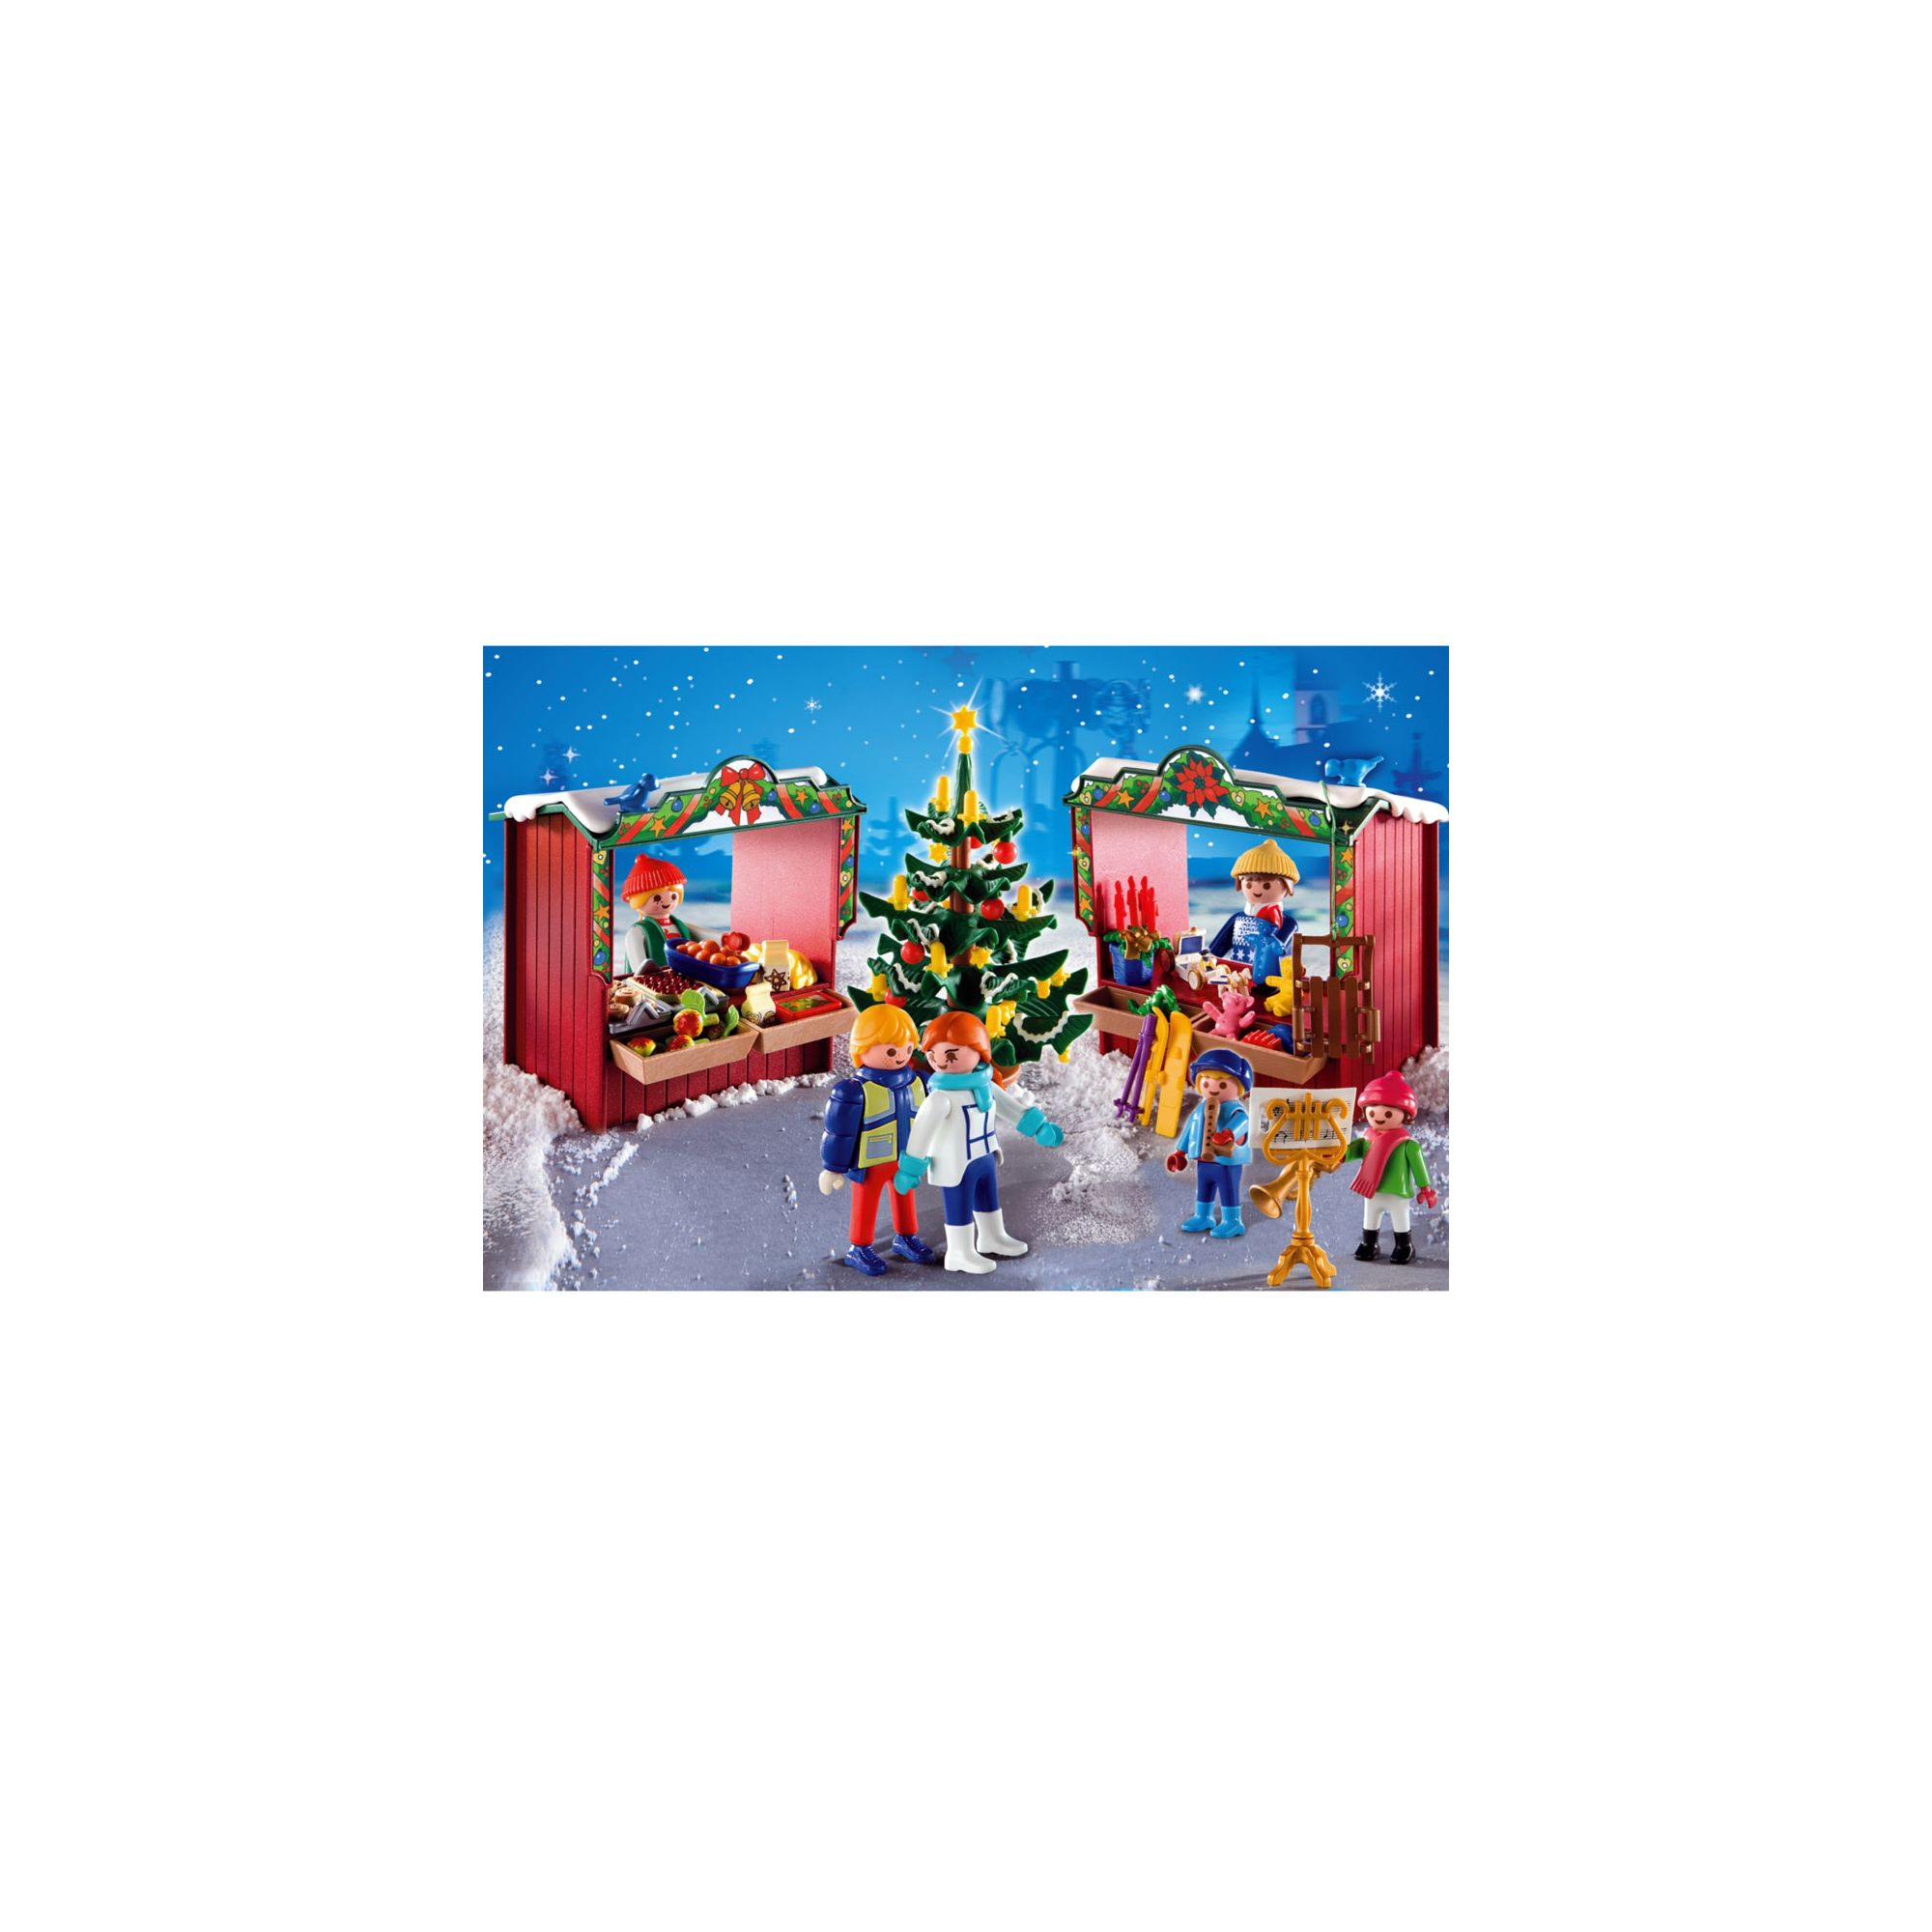 Toyshop toychief for Playmobil kinderzimmer 4287